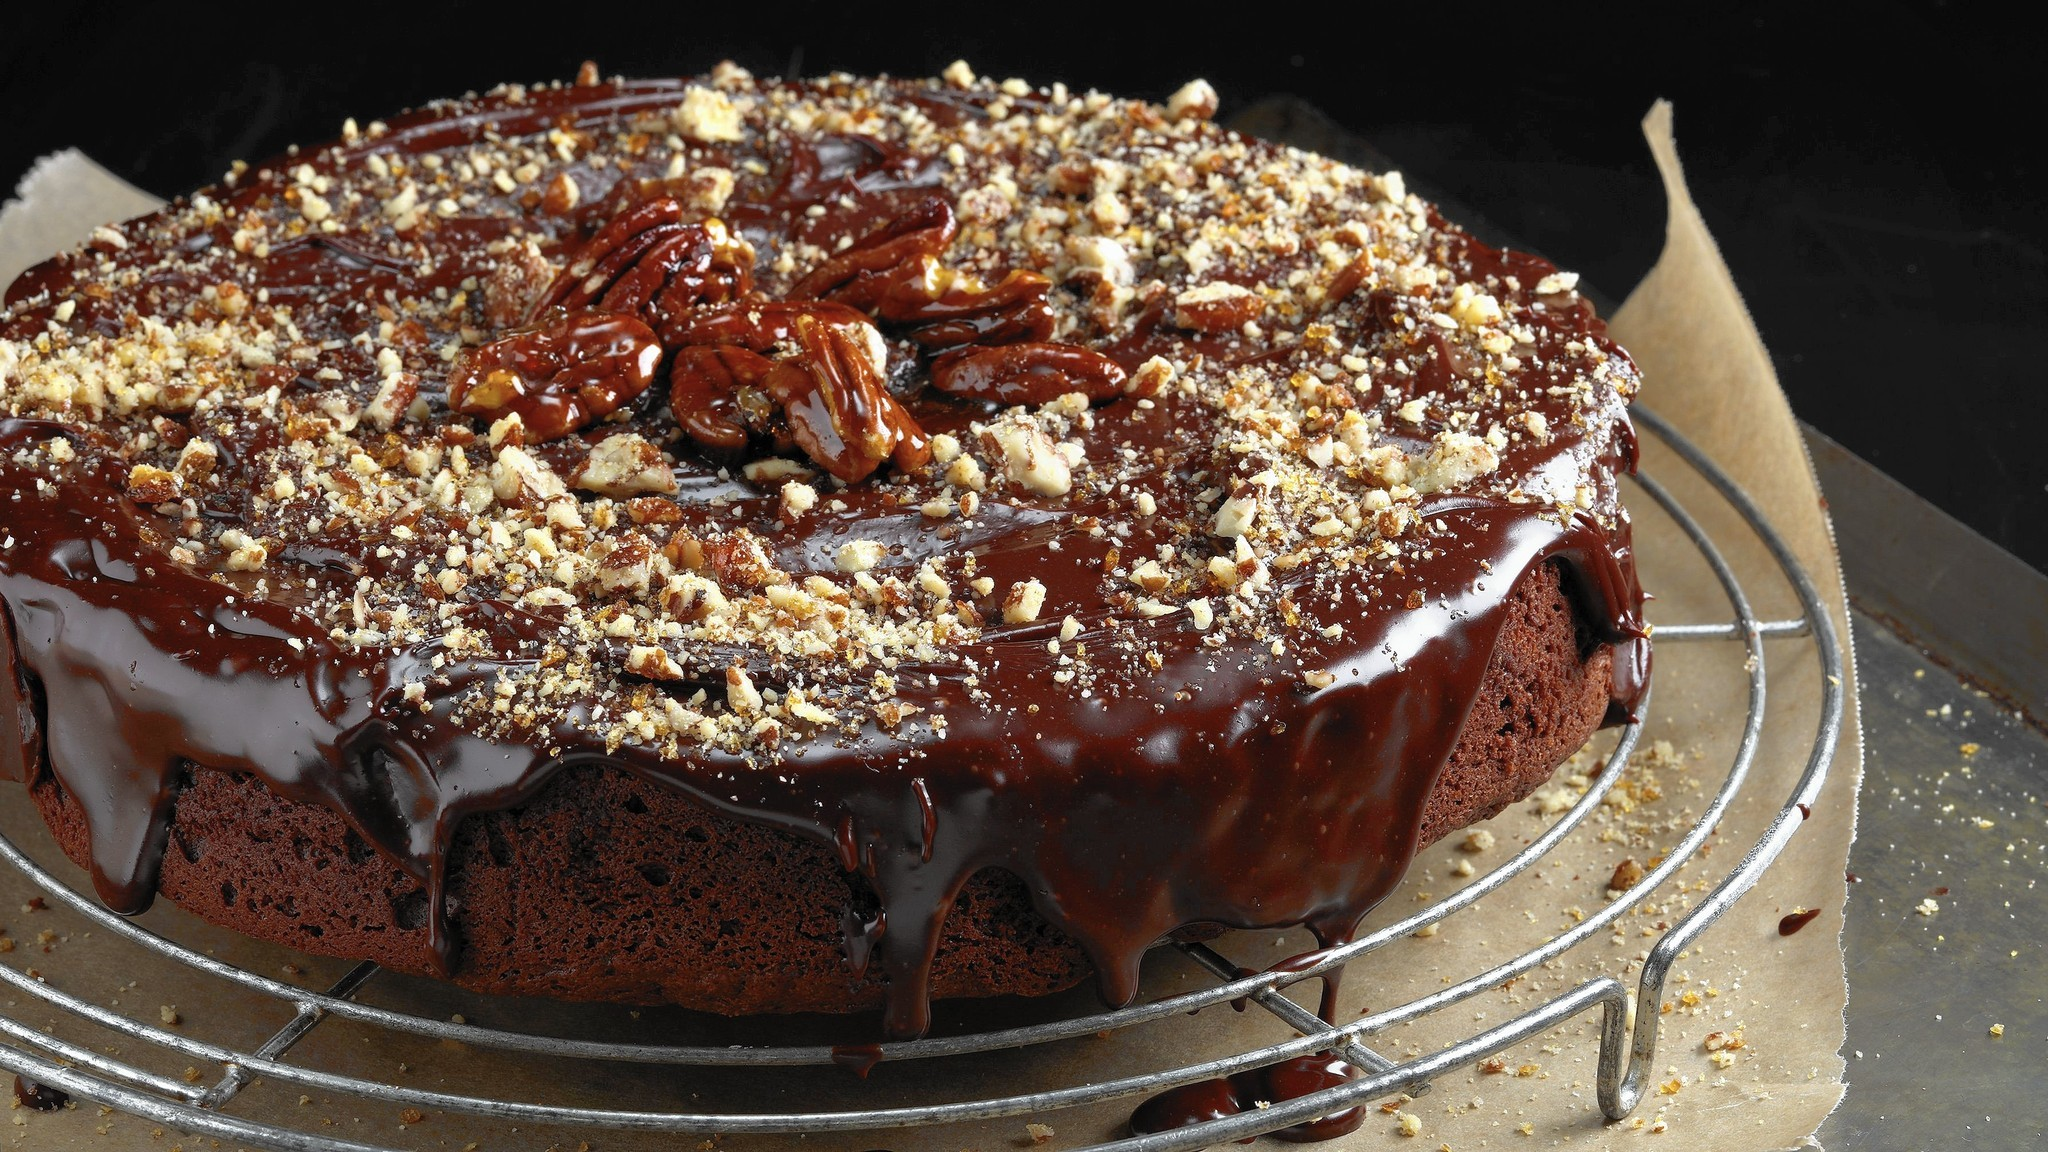 Almost perfect chocolate cake gets a little better